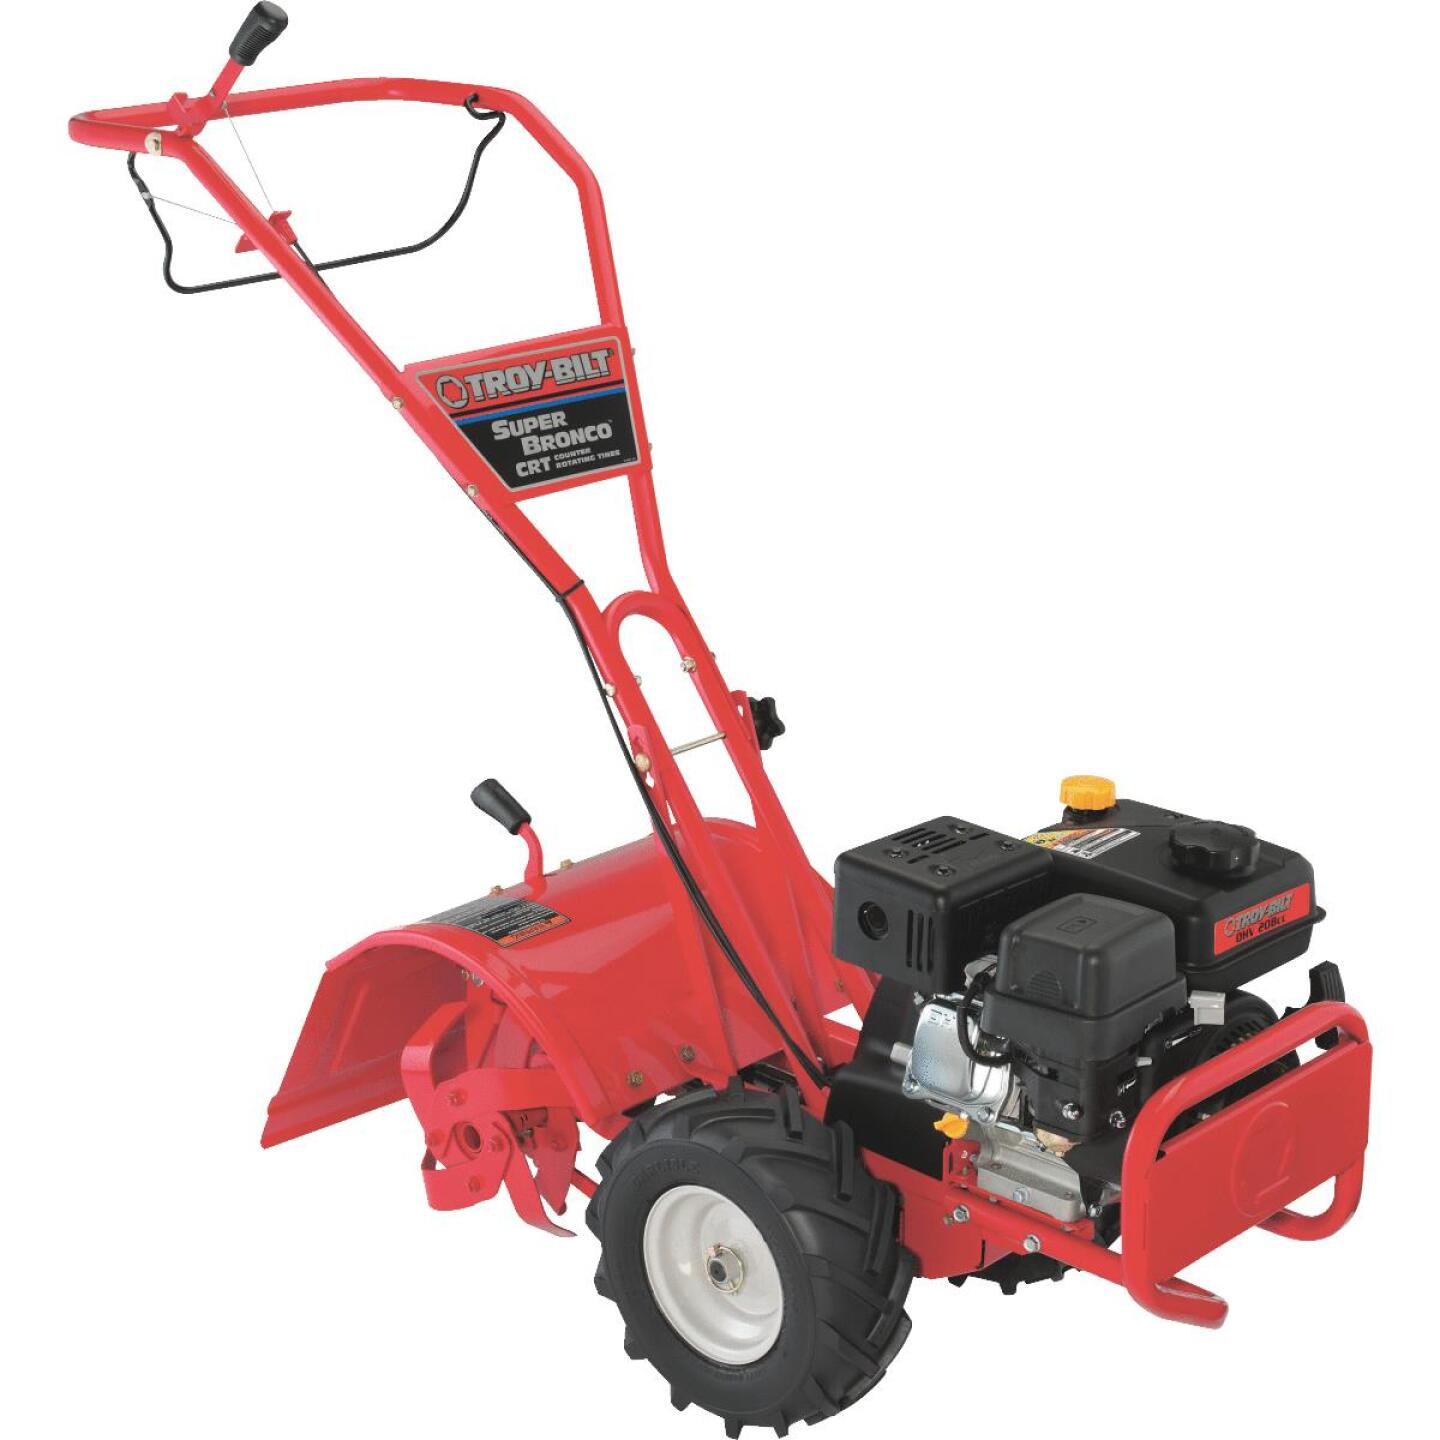 Troy-Bilt Super Bronco 16 In. 208cc Rear Tine Counter-Rotating Garden Tiller Image 1